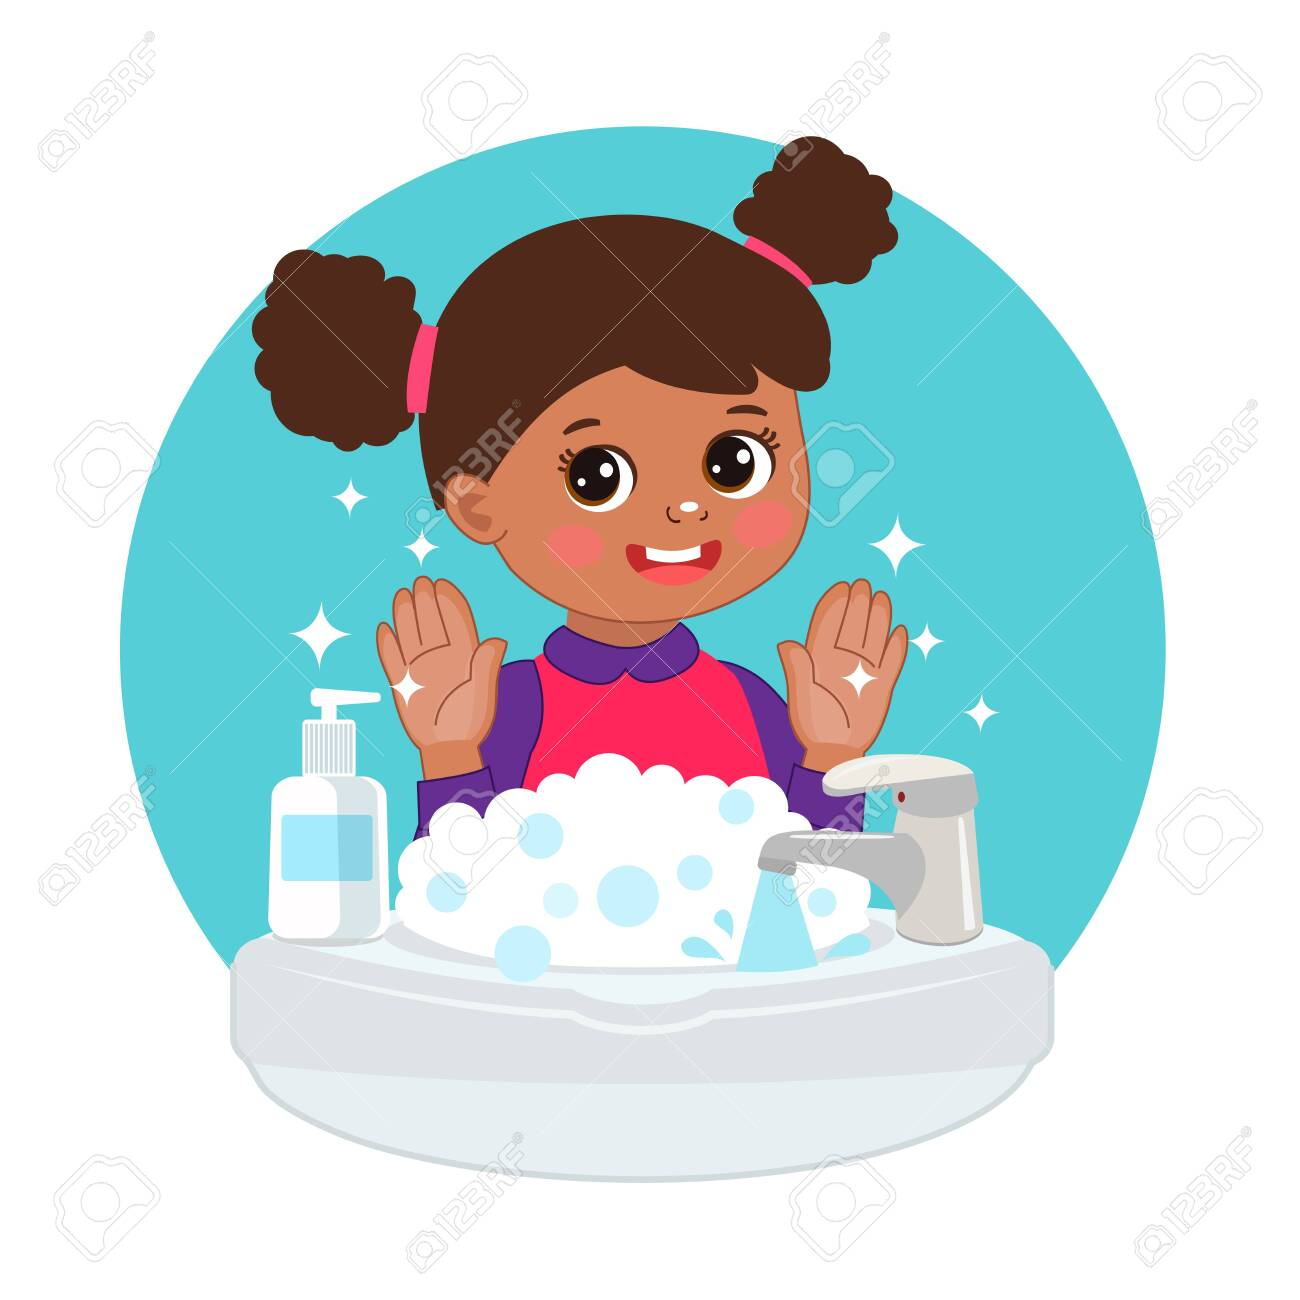 Cute Young Afro American Girl Washing Hands In The Sink Illustration Royalty Free Cliparts Vectors And Stock Illustration Image 142827885